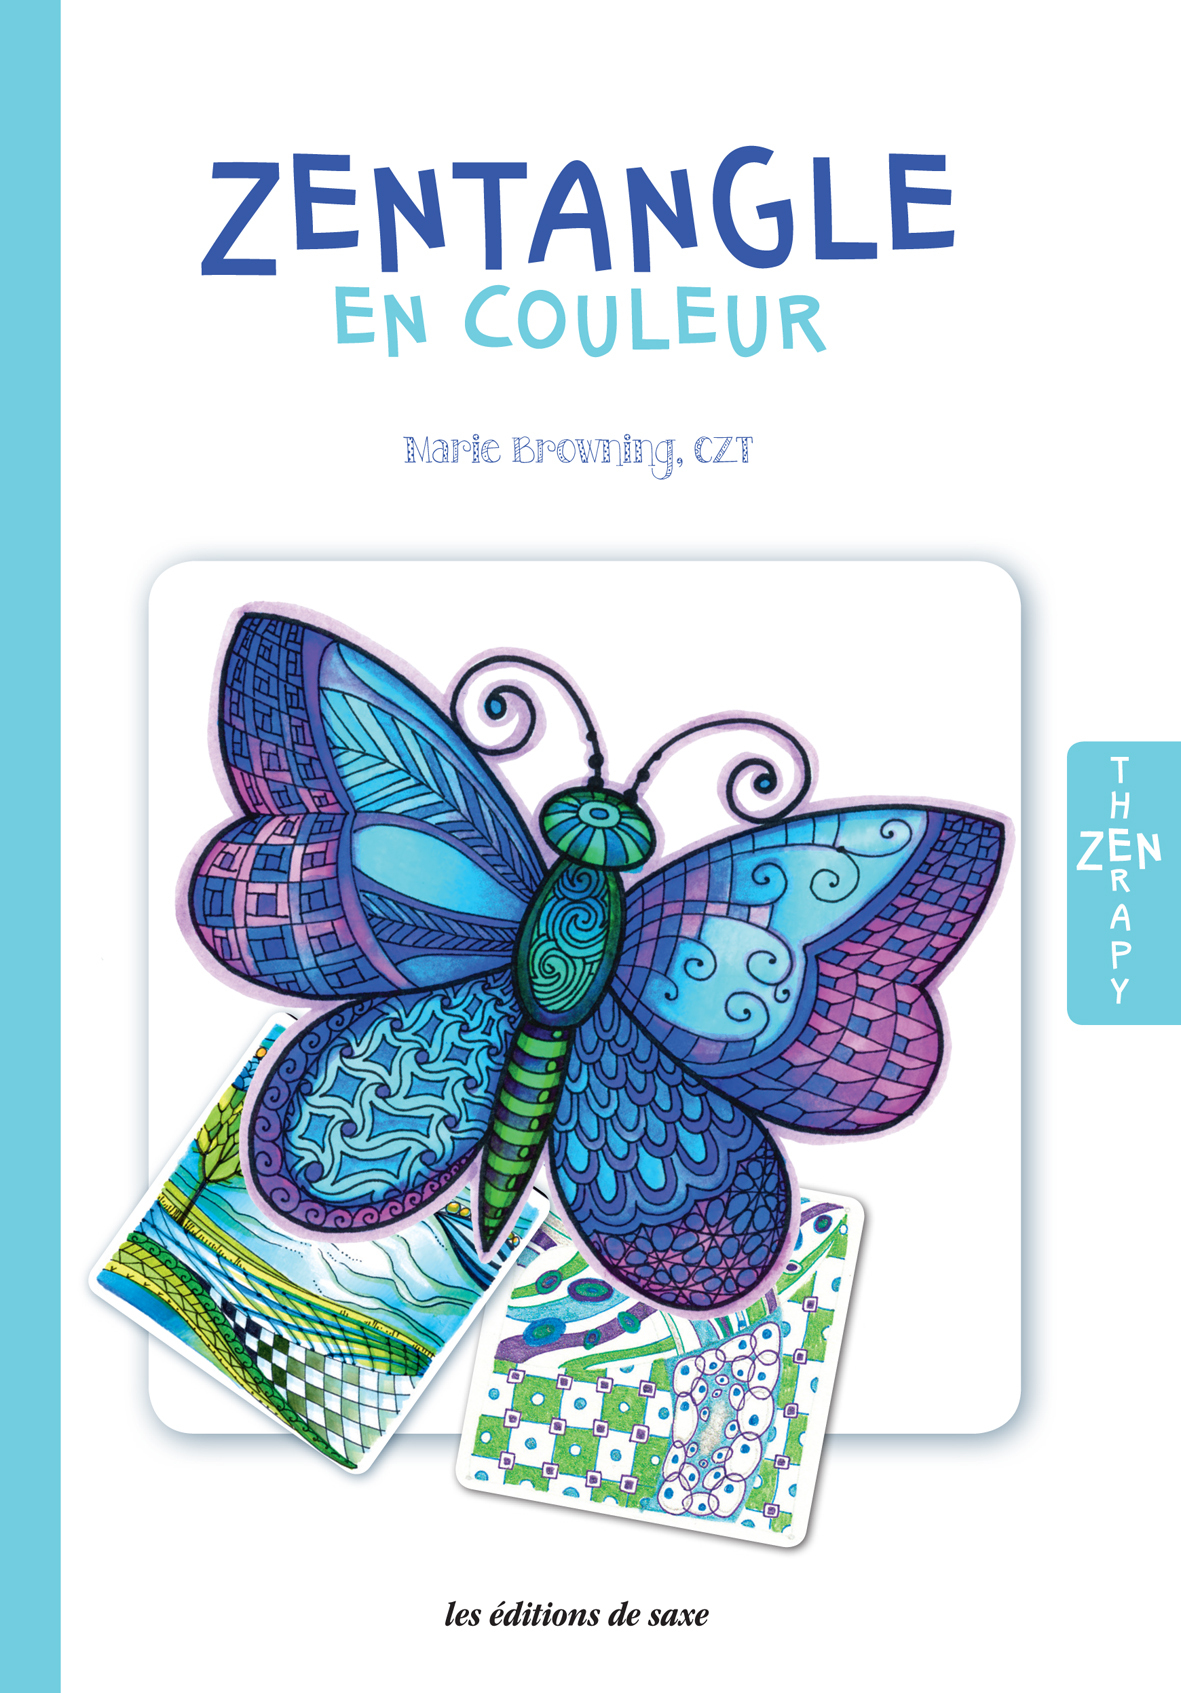 ZENTANGLE EN COULEUR